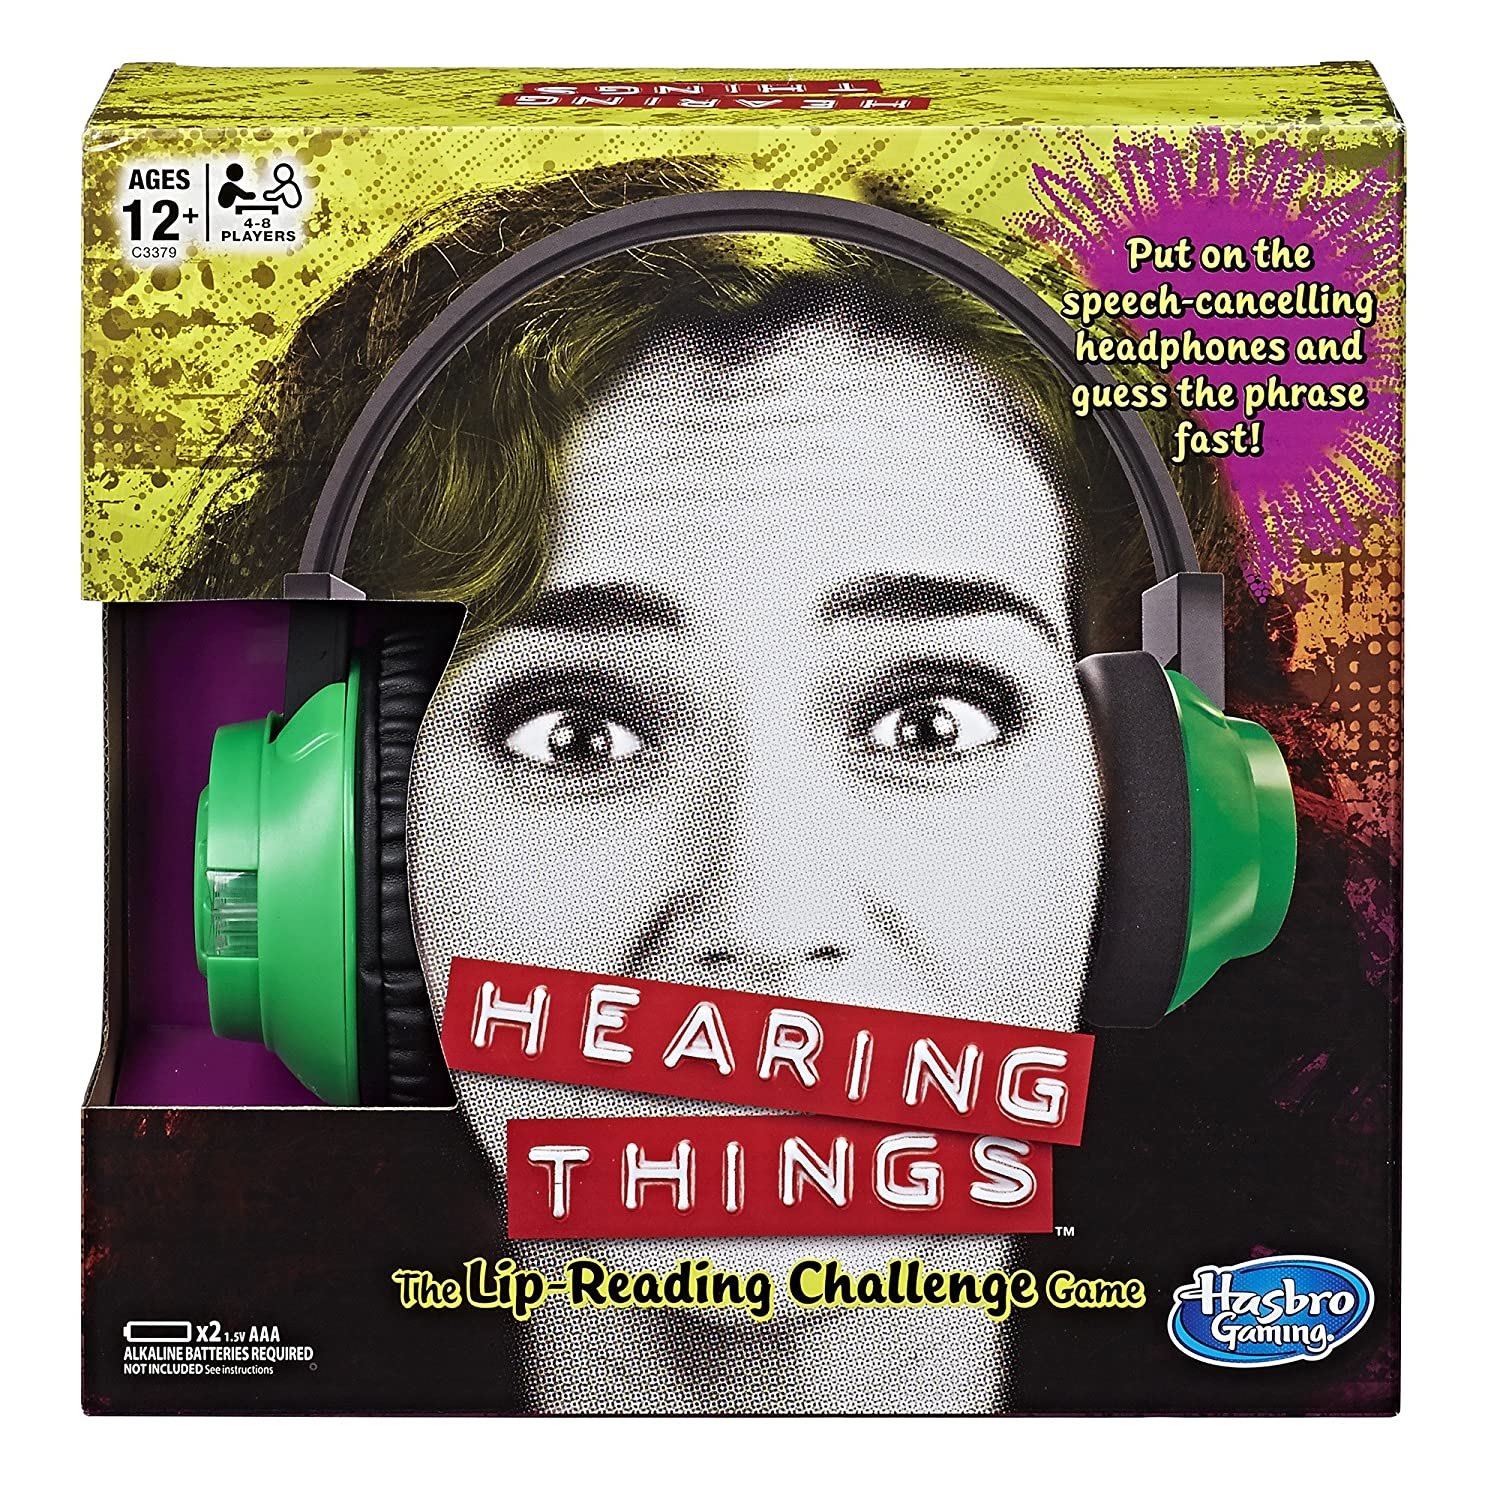 Hearing things boxset game by Hasbro Gaming